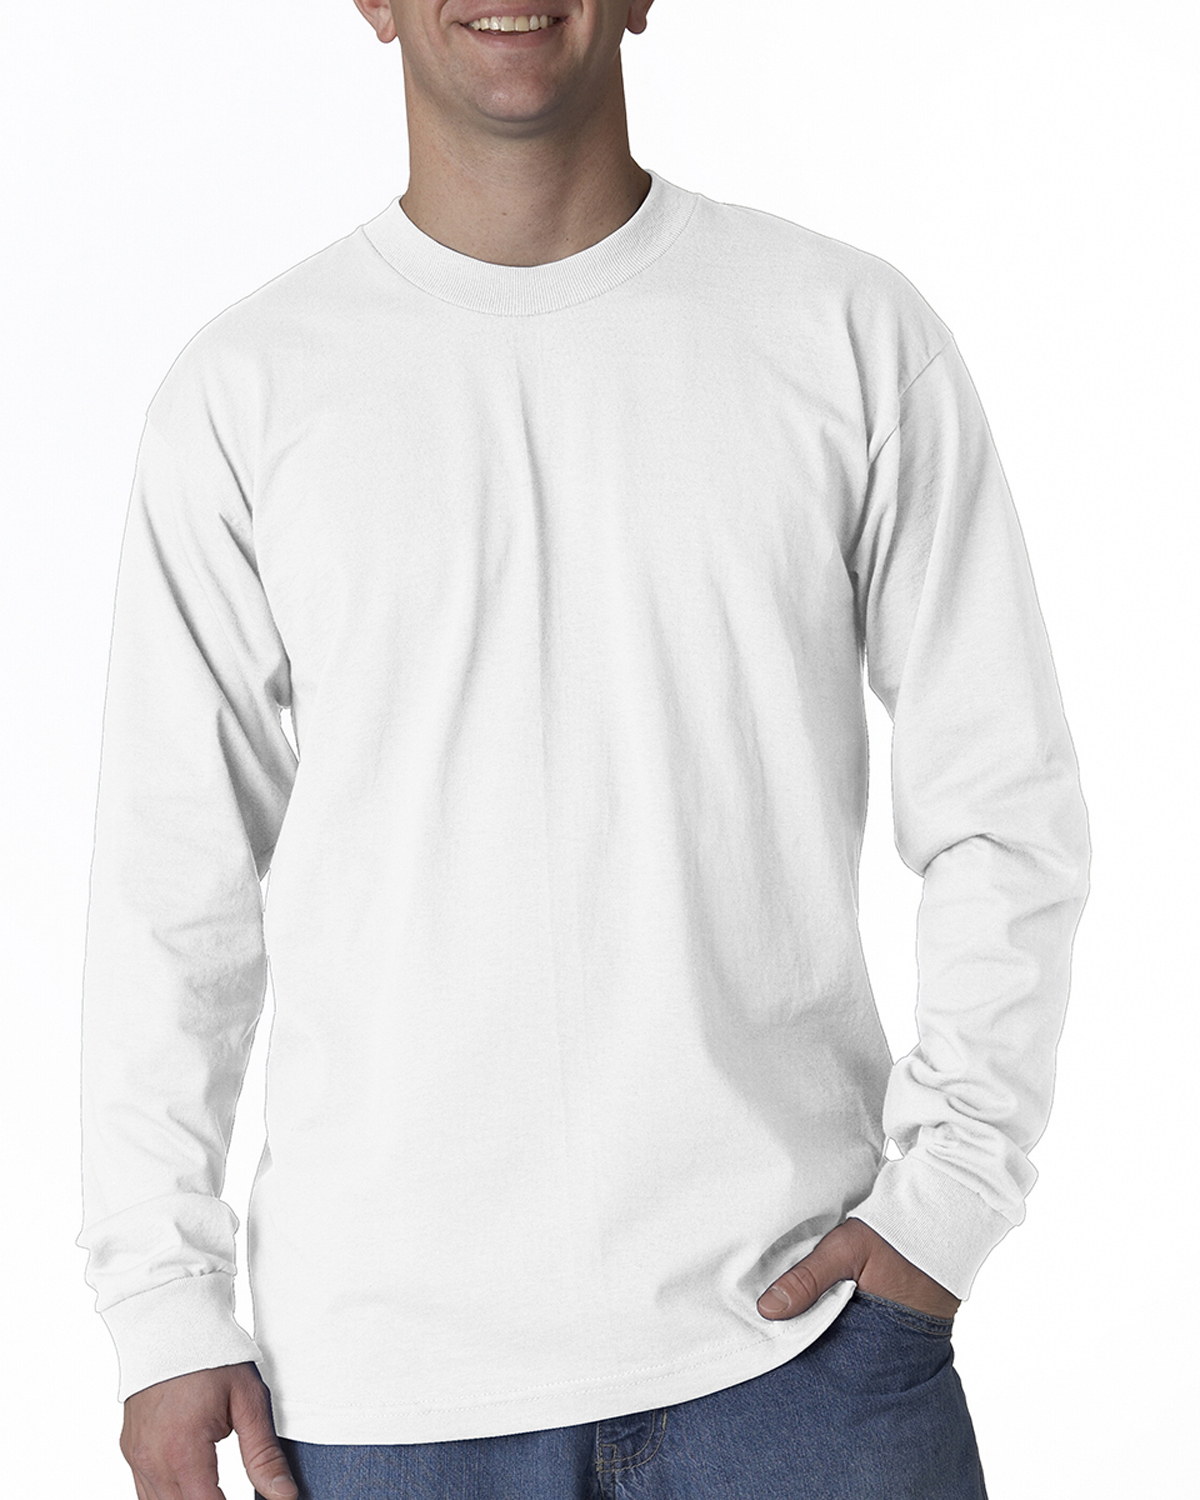 Bayside 2955 Union Made Long Sleeve T-Shirt